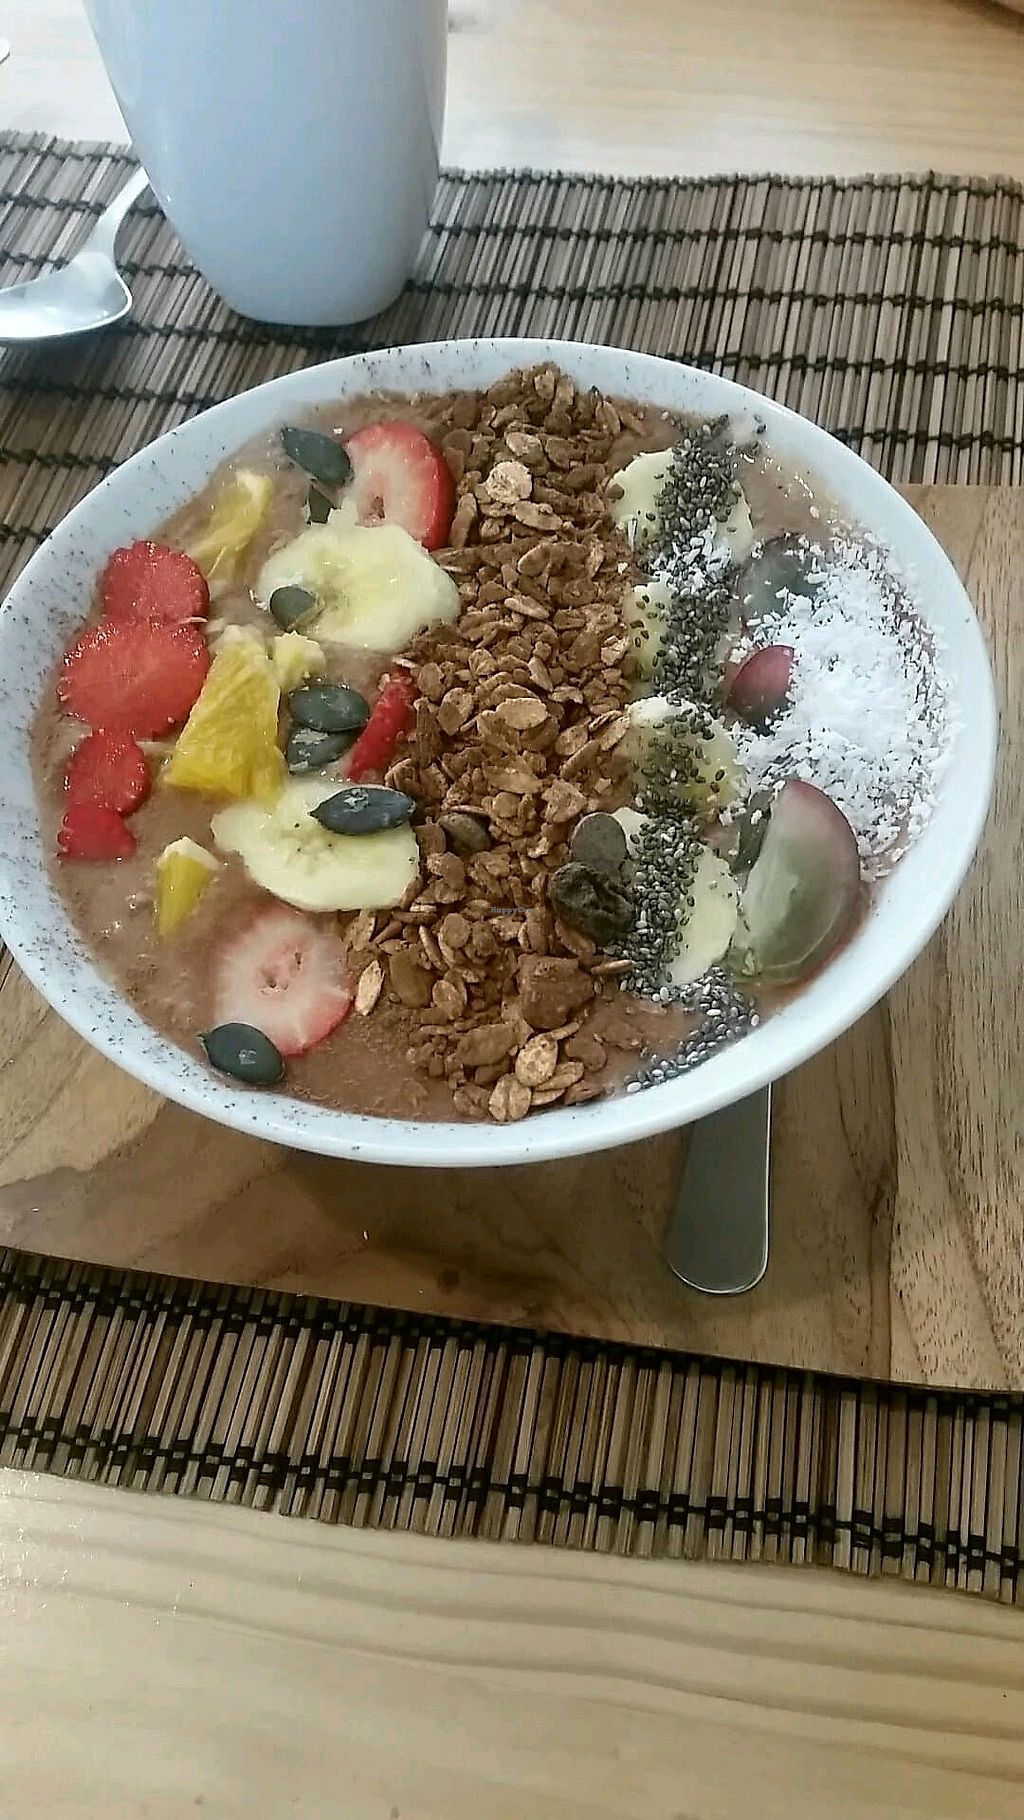 "Photo of Terra Incognita  by <a href=""/members/profile/M%26R"">M&R</a> <br/>Fruit and chocolate granola smoothie bowl <br/> February 23, 2018  - <a href='/contact/abuse/image/102445/362848'>Report</a>"